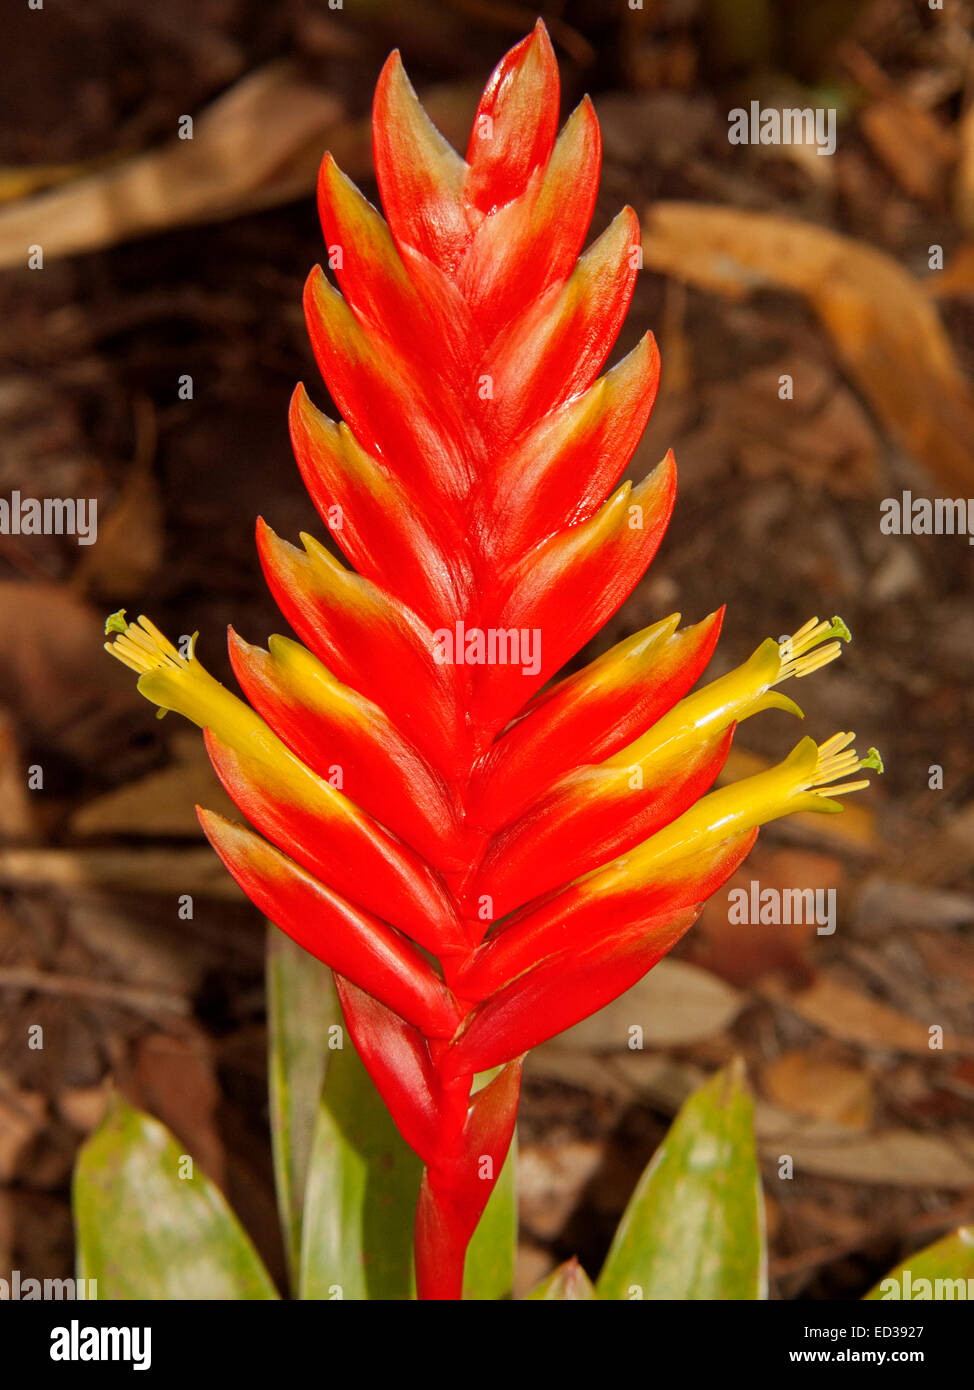 Vivid Flame Red Bracts And Bright Yellow Flowers Of Bromeliad Stock